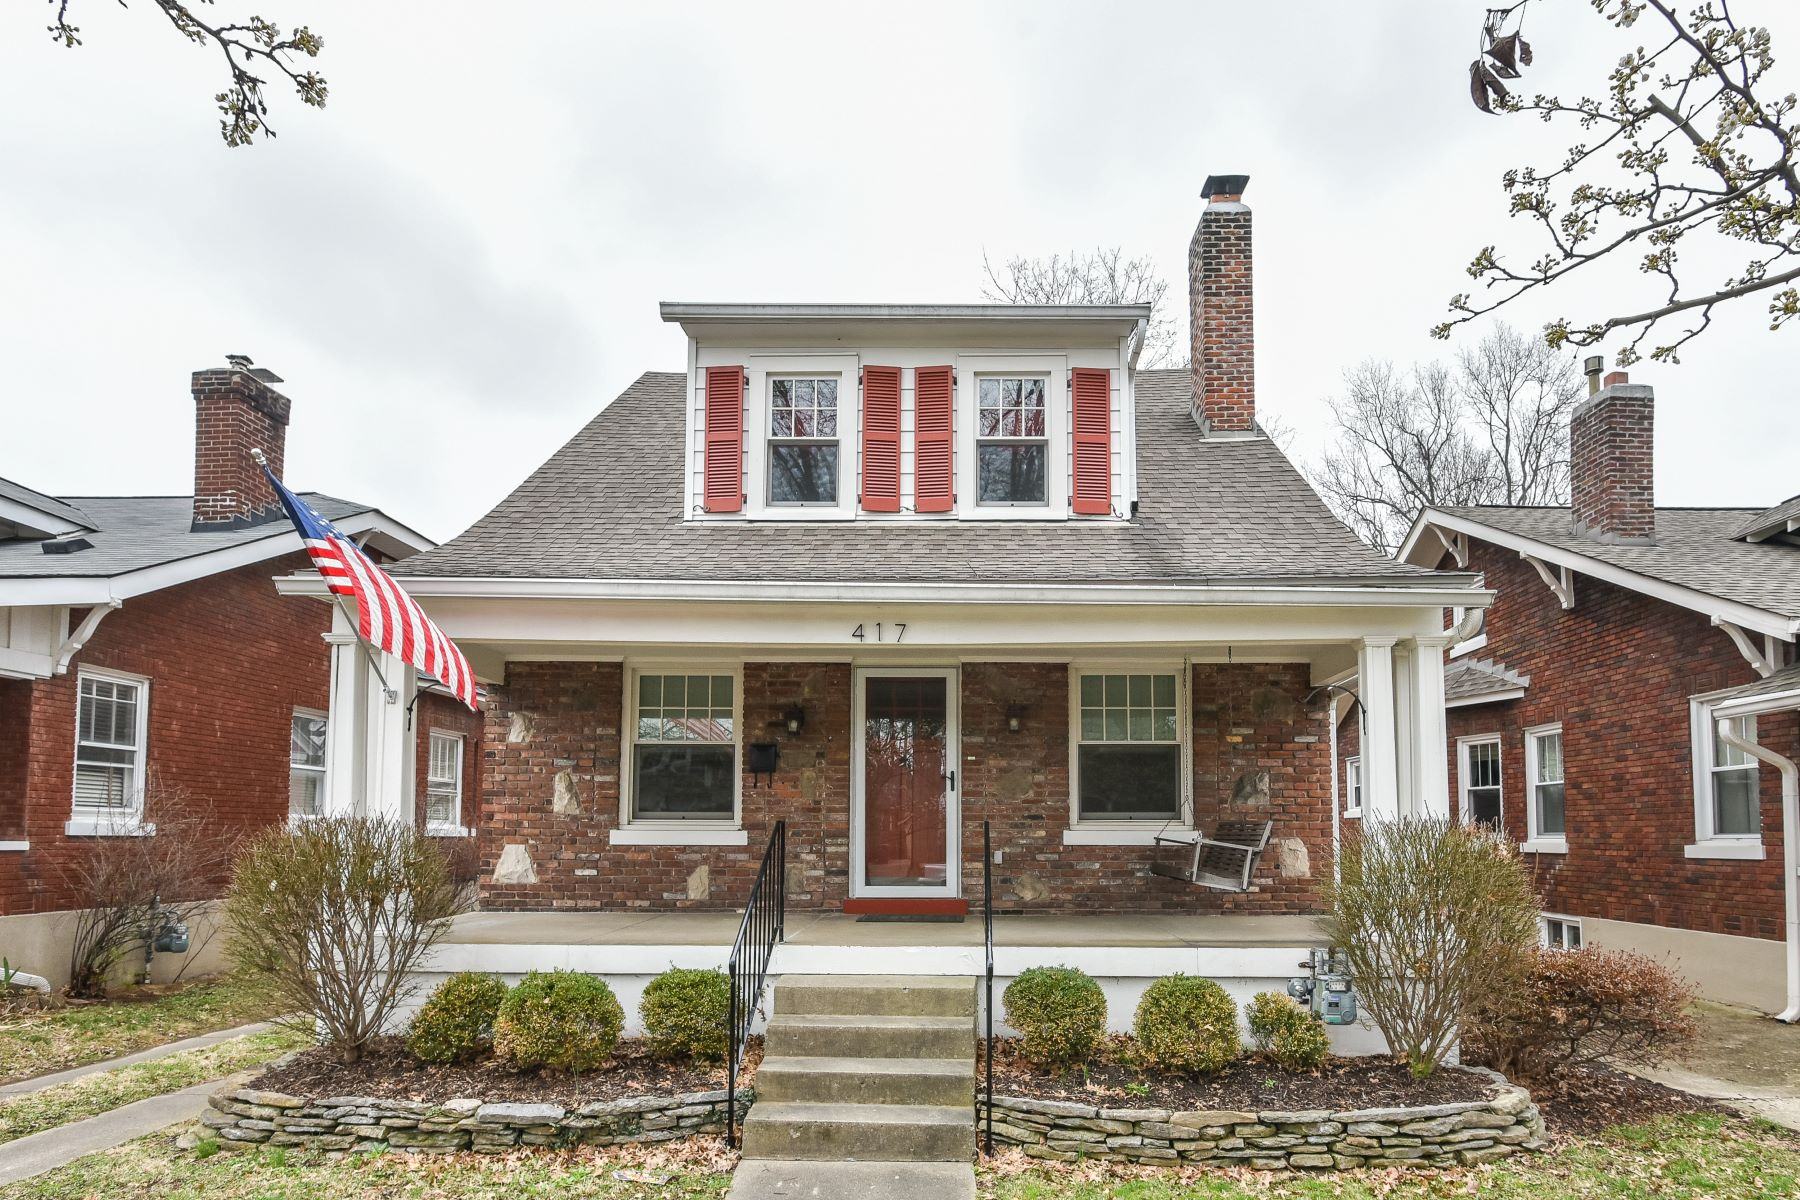 Single Family Home for Sale at 417 Iola Road 417 Iola Road Louisville, Kentucky 40207 United States